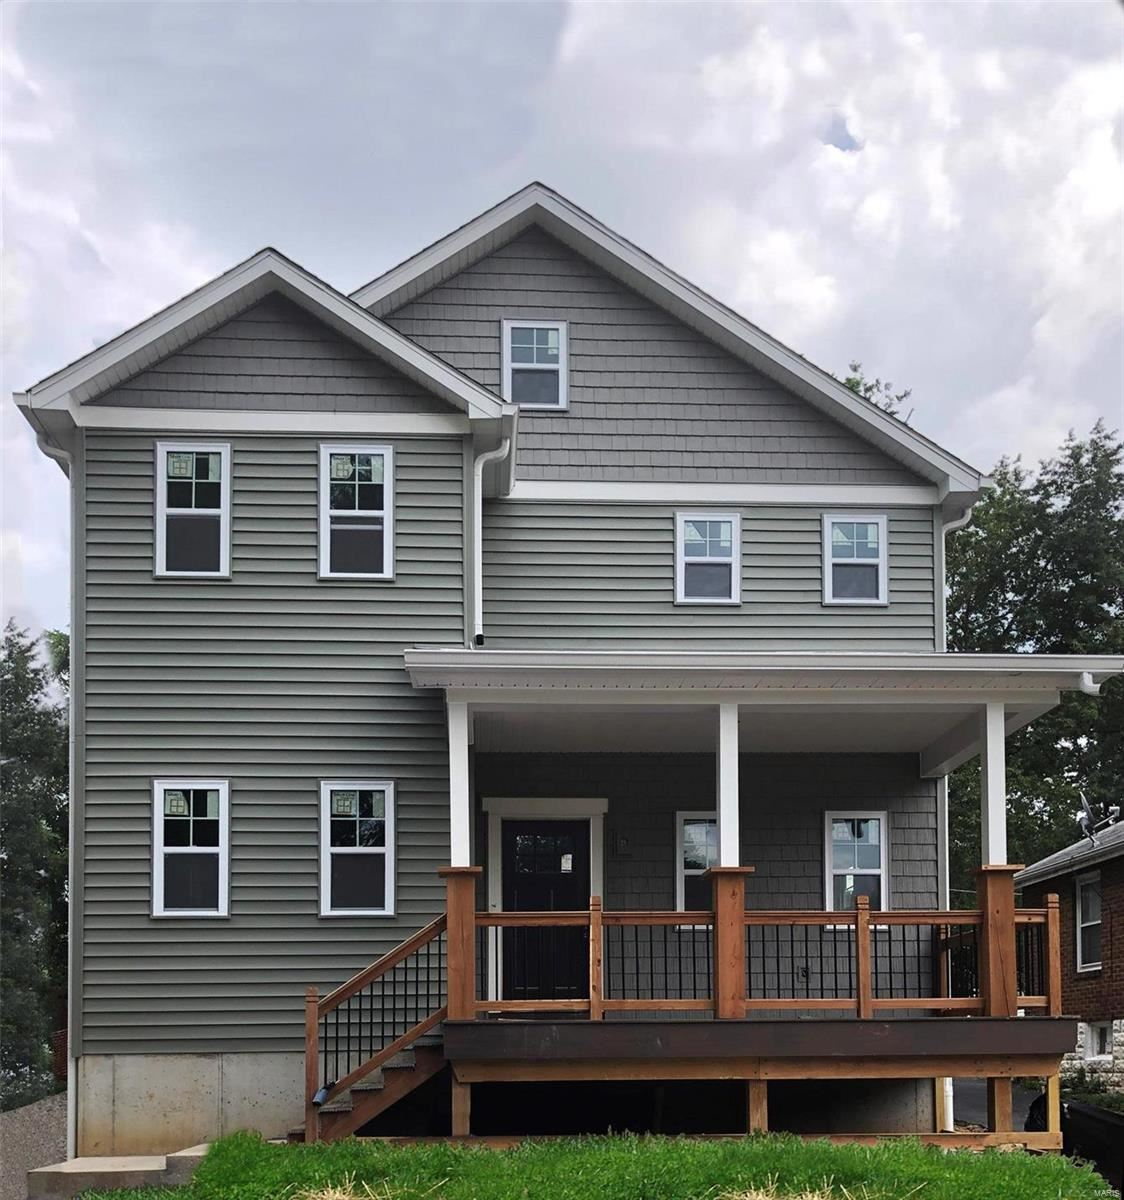 2308 Hilton Ave, Brentwood, MO 63144 - MLS#: 20068630